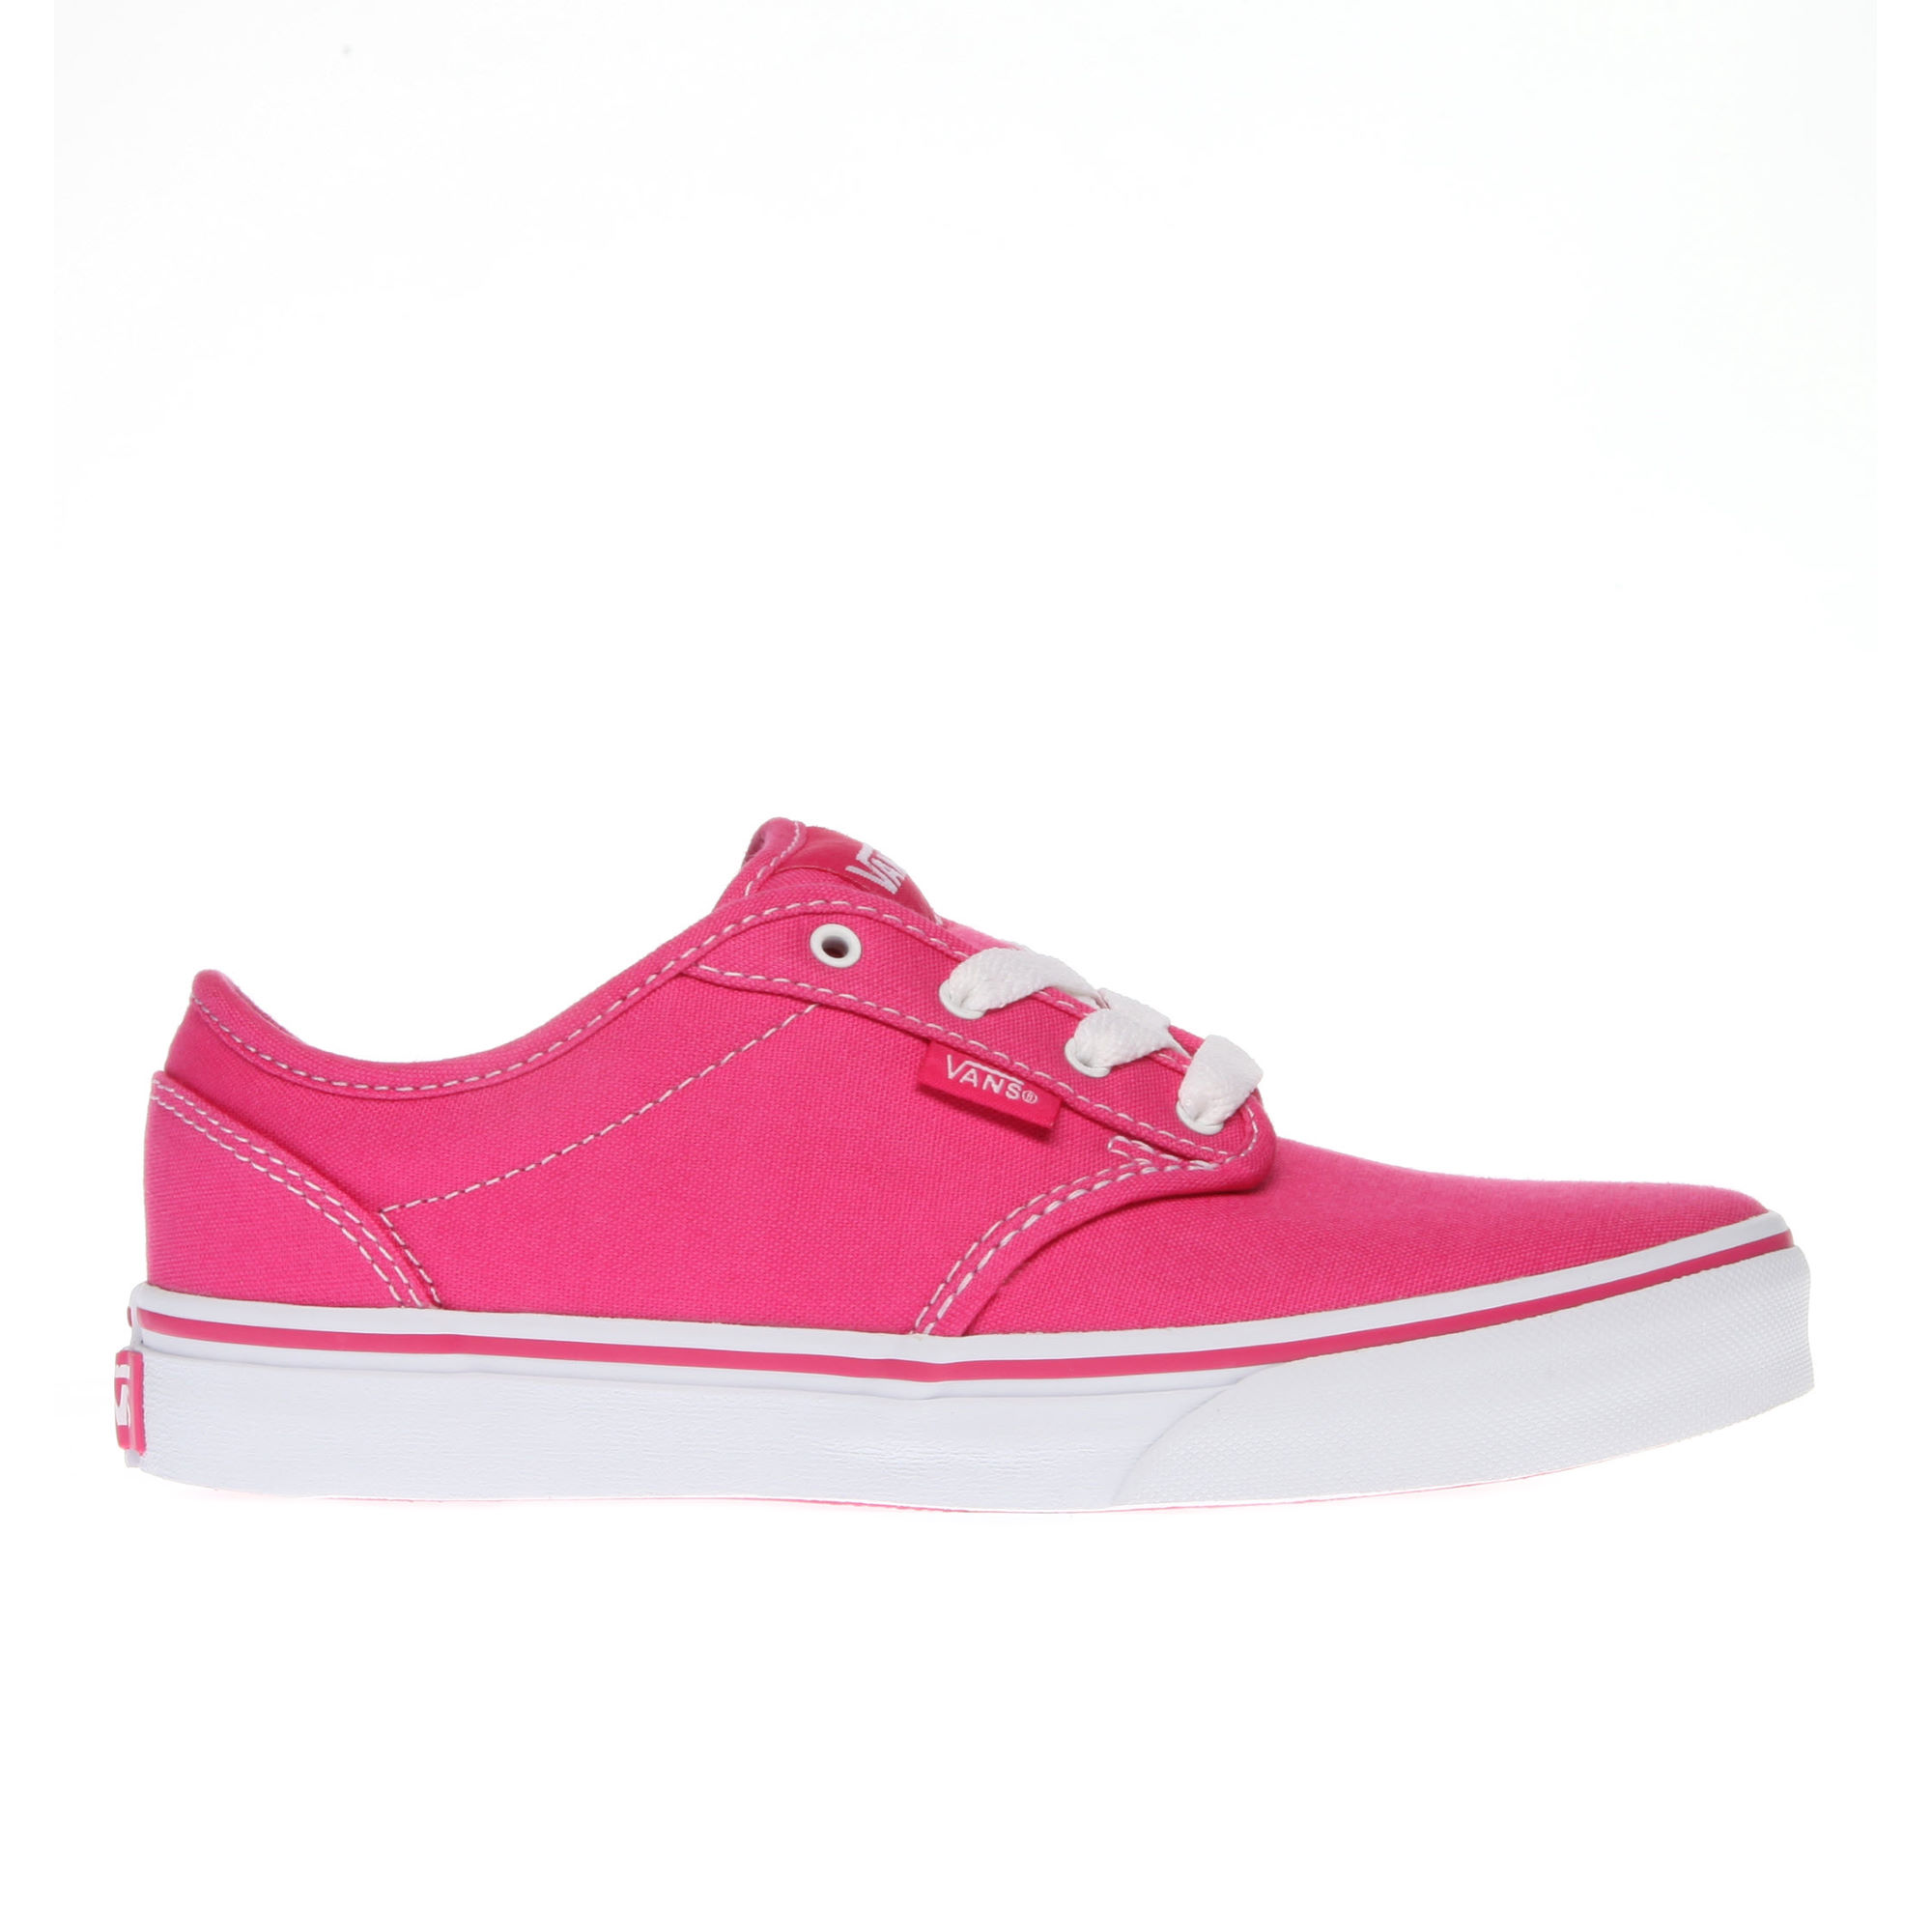 Wiggle | Vans Girls Atwood Shoe 2013 | Casual Shoes